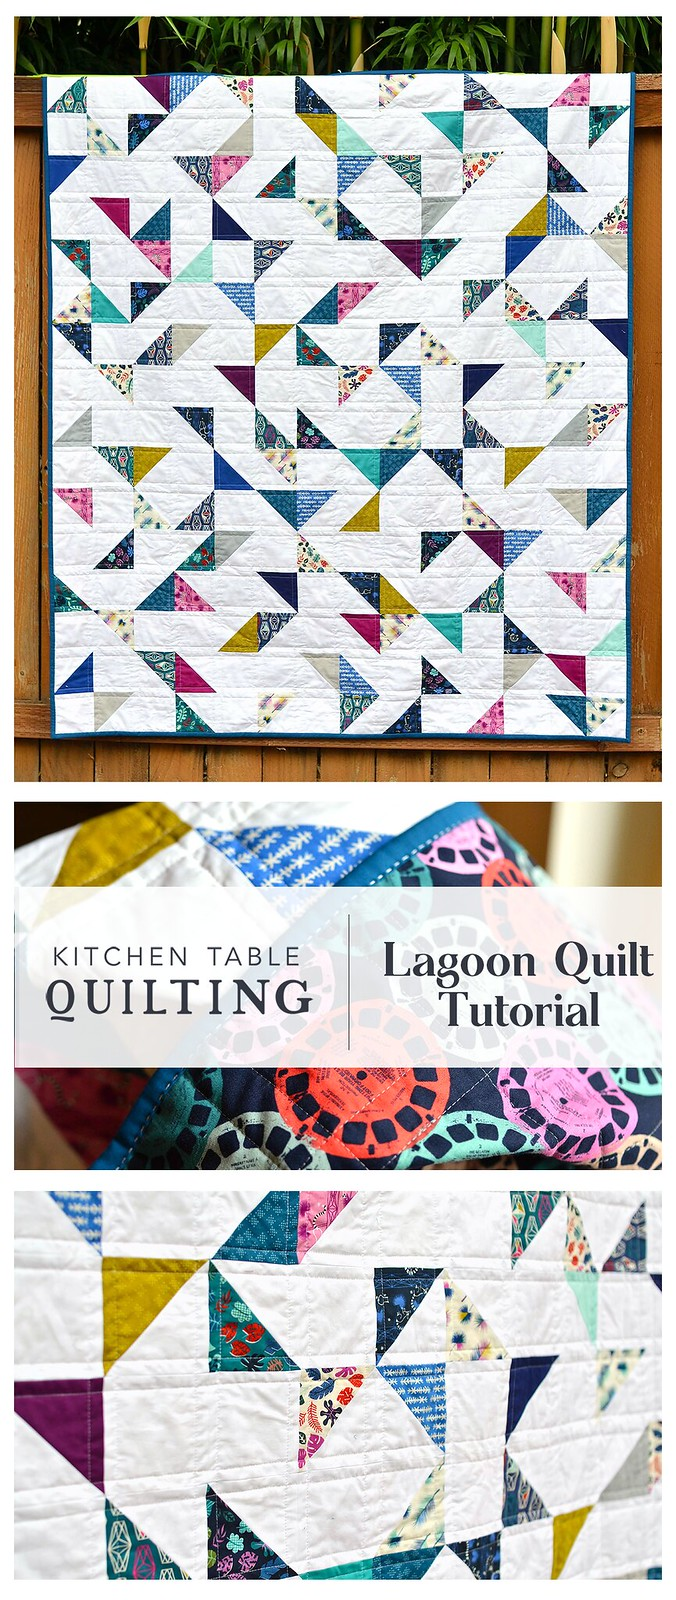 Lagoon HST Quilt Tutorial - Kitchen Table Quilting